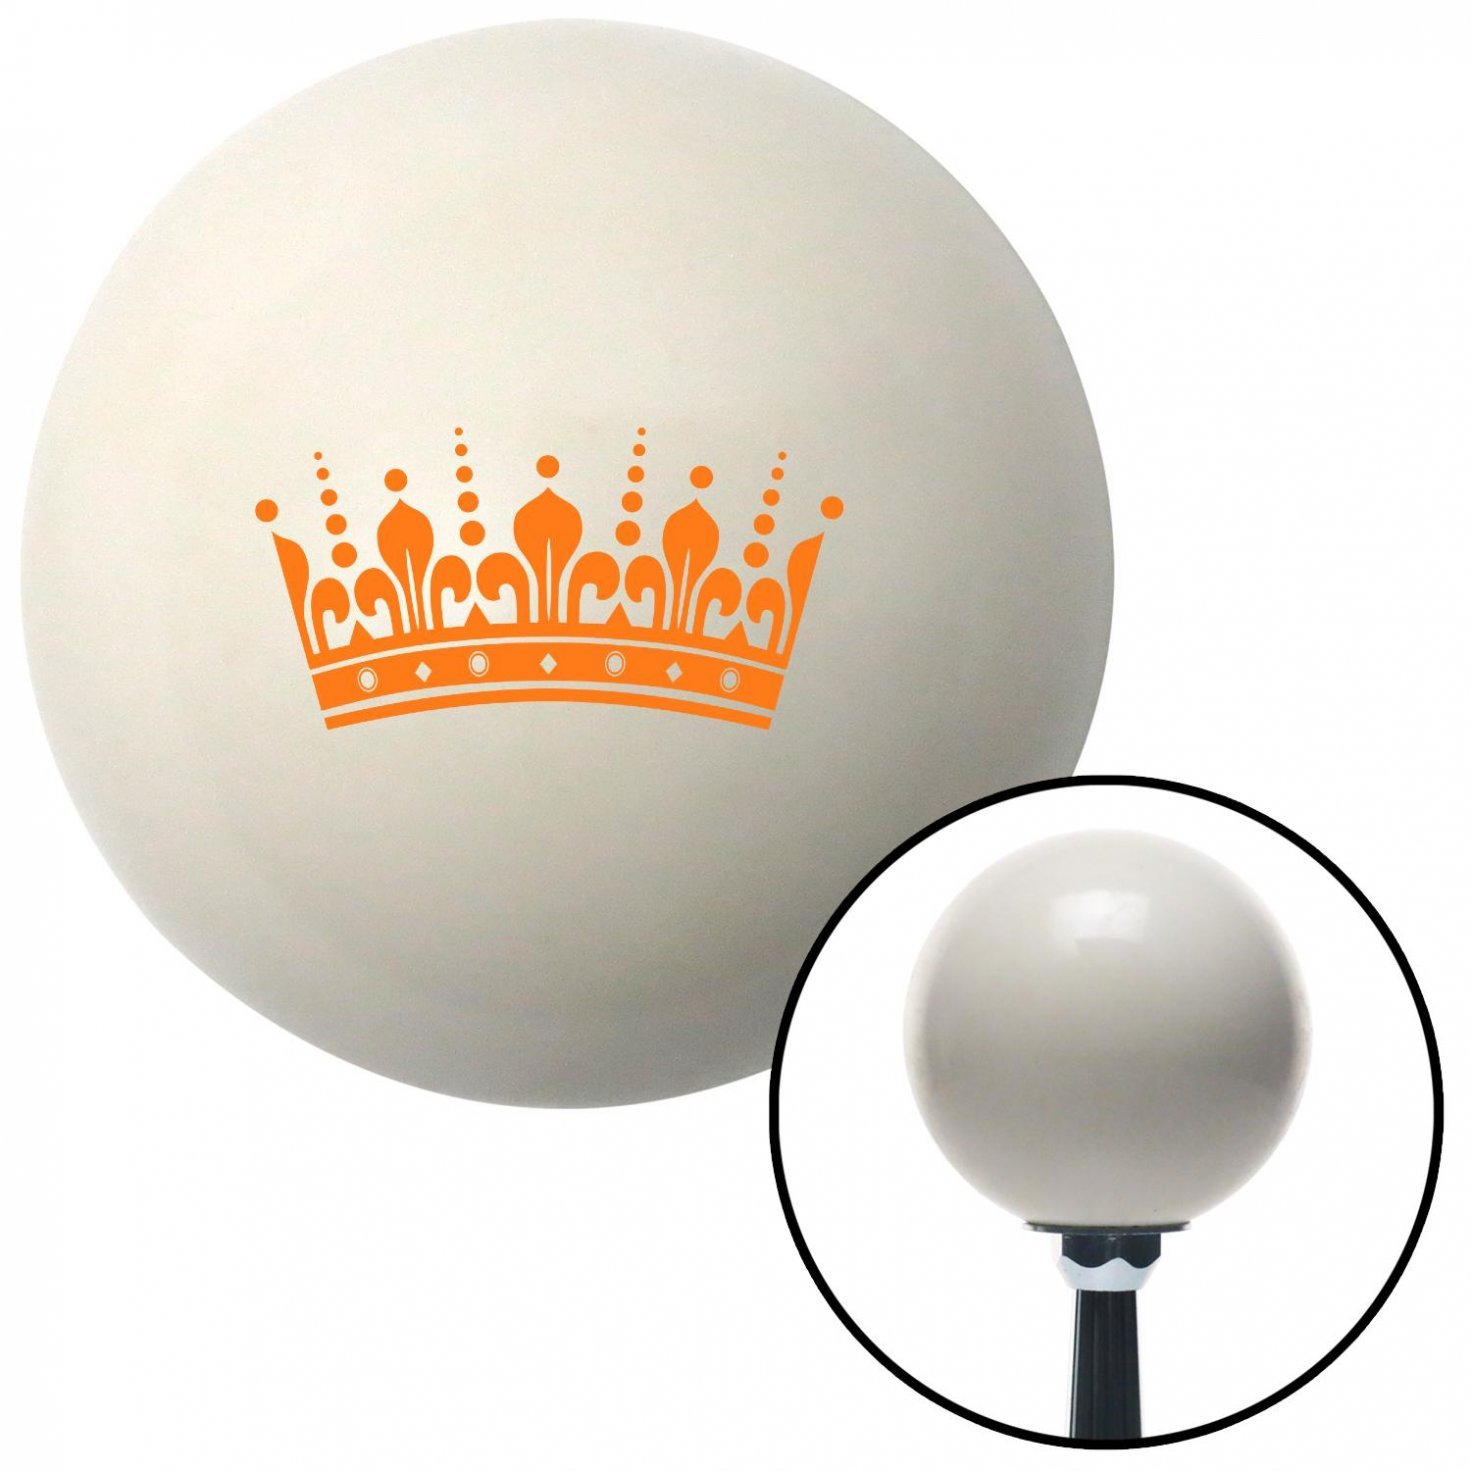 Orange Kings Crown American Shifter 30941 Ivory Shift Knob with 16mm x 1.5 Insert